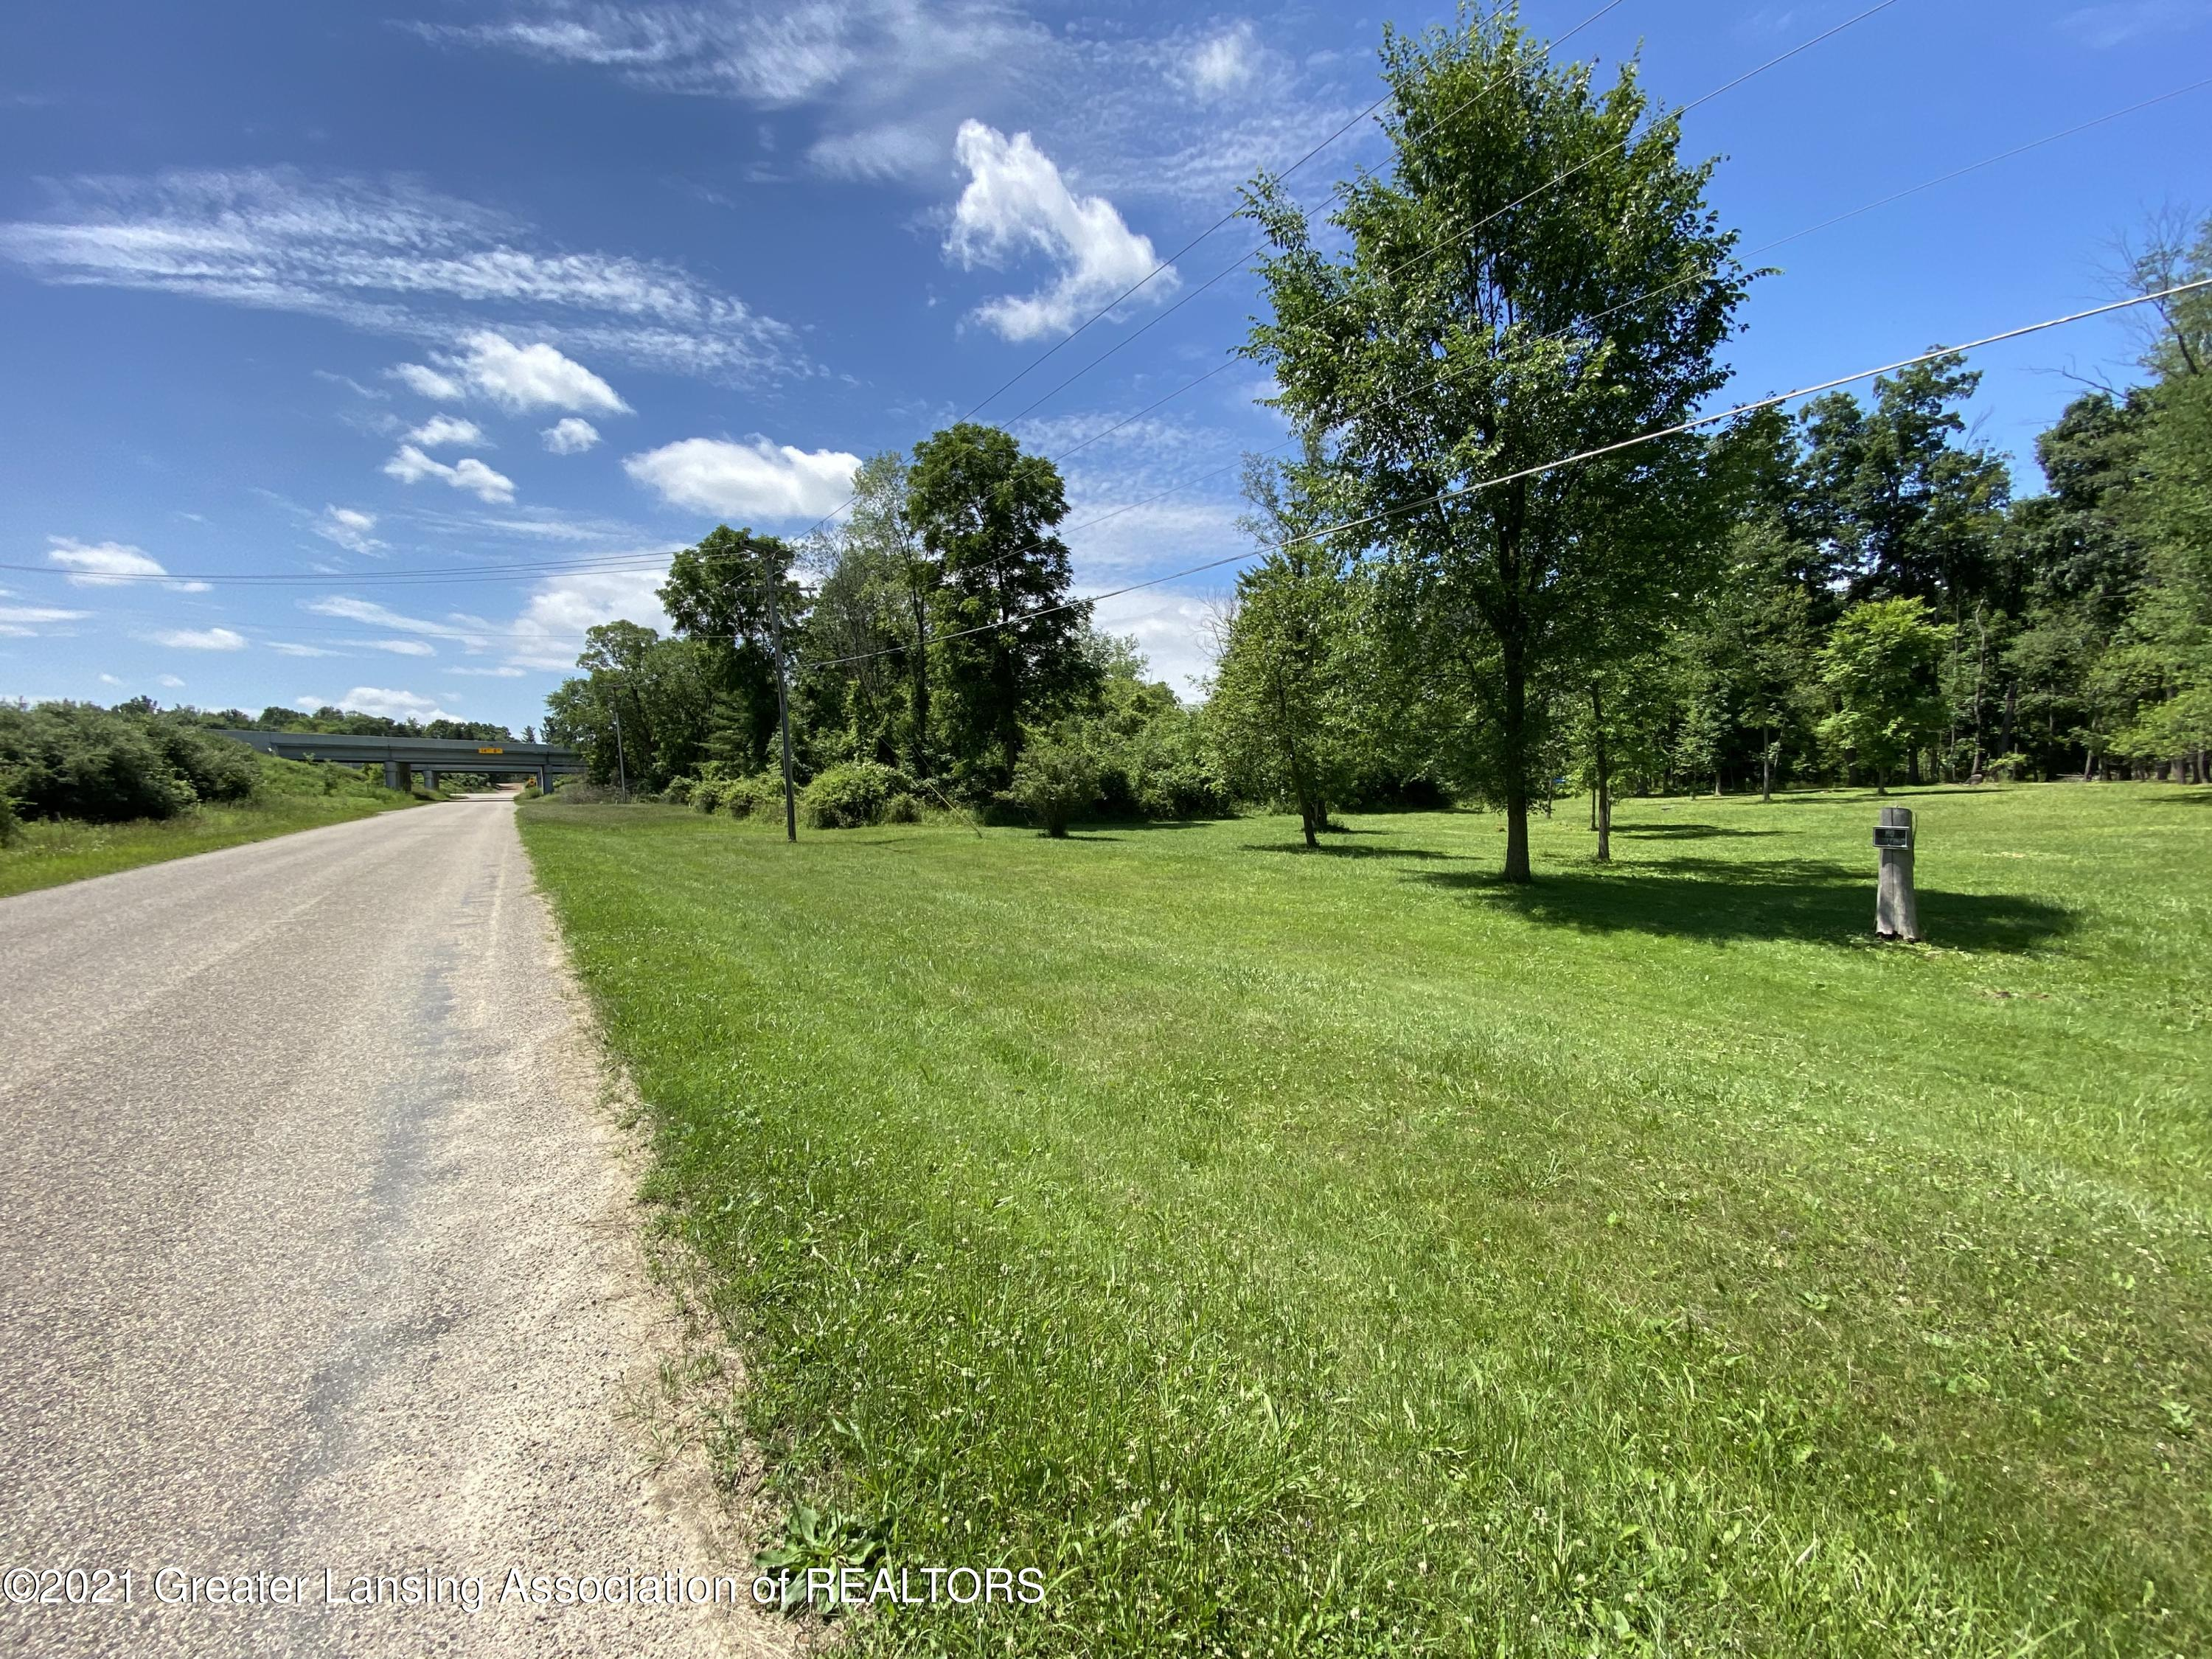 15729 Peacock Rd - Road view - 2